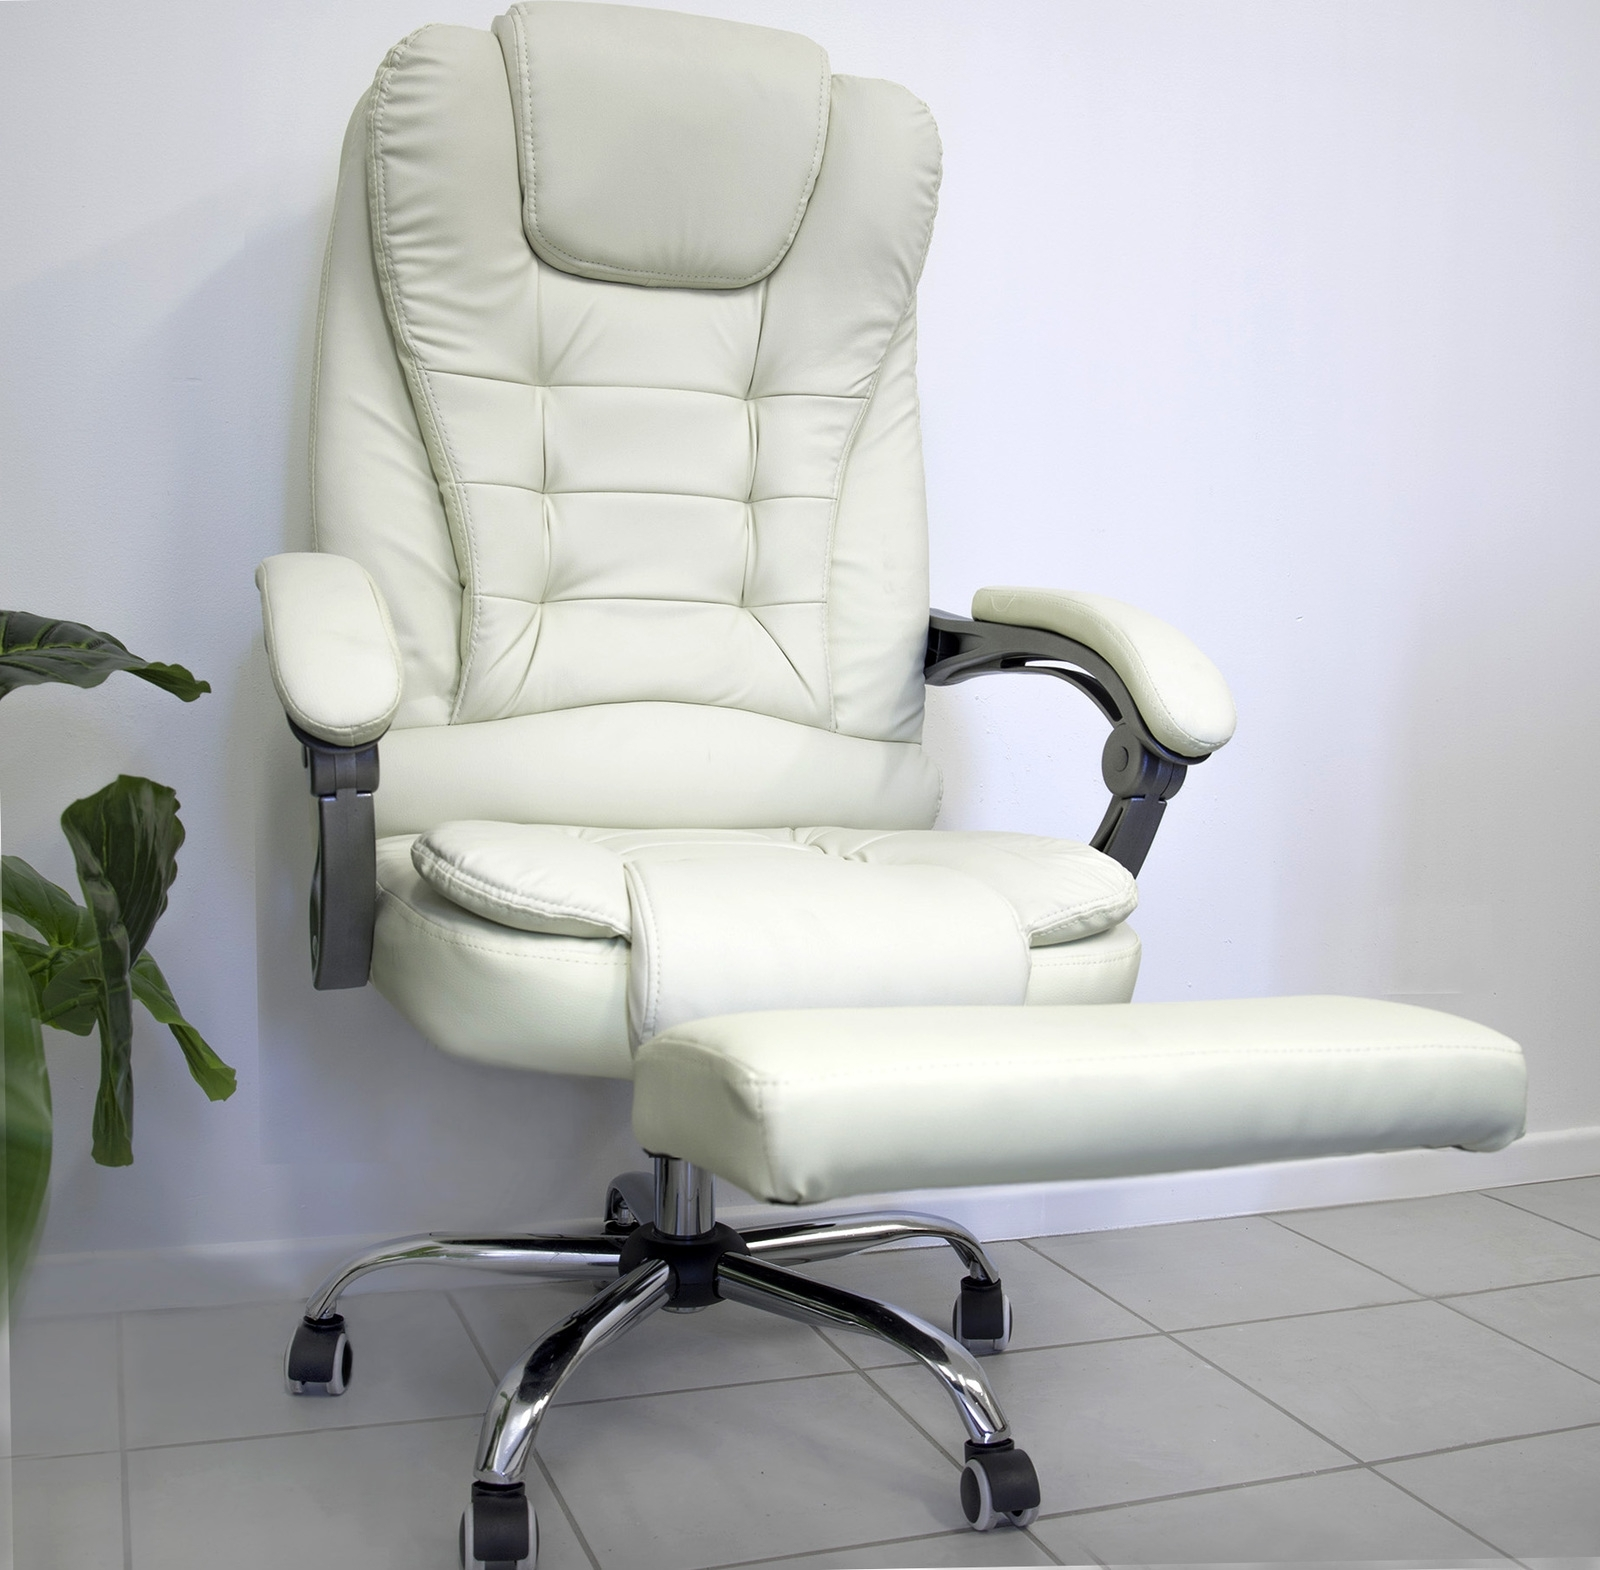 Famous Apex Deluxe Executive Reclining Office Computer Chair With Foot Rest Intended For Executive Reclining Office Chairs (View 9 of 20)